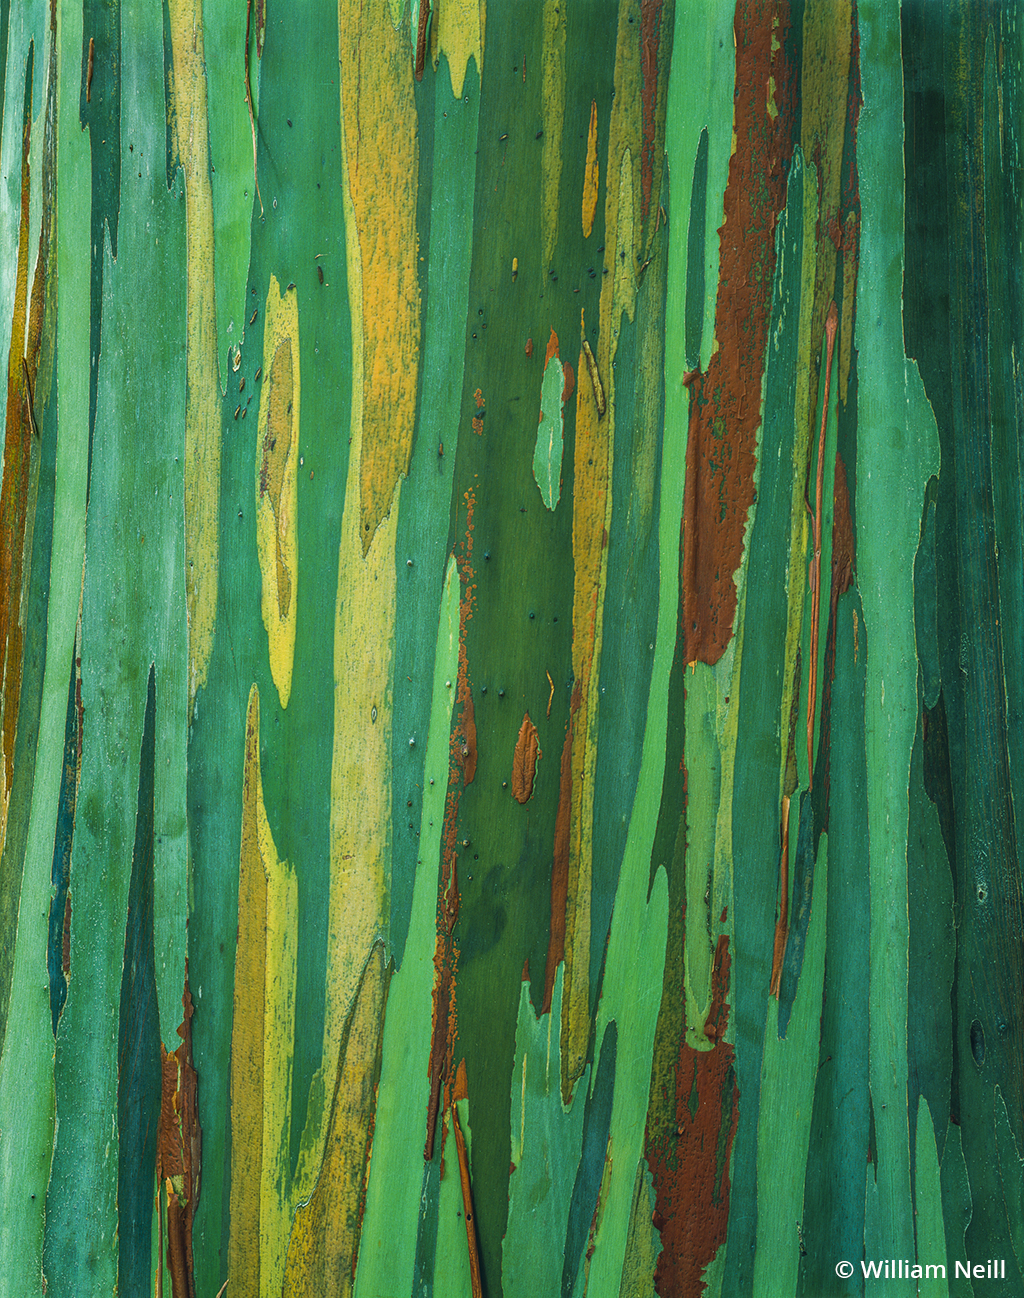 example of abstract nature photography: eucalyptus bark